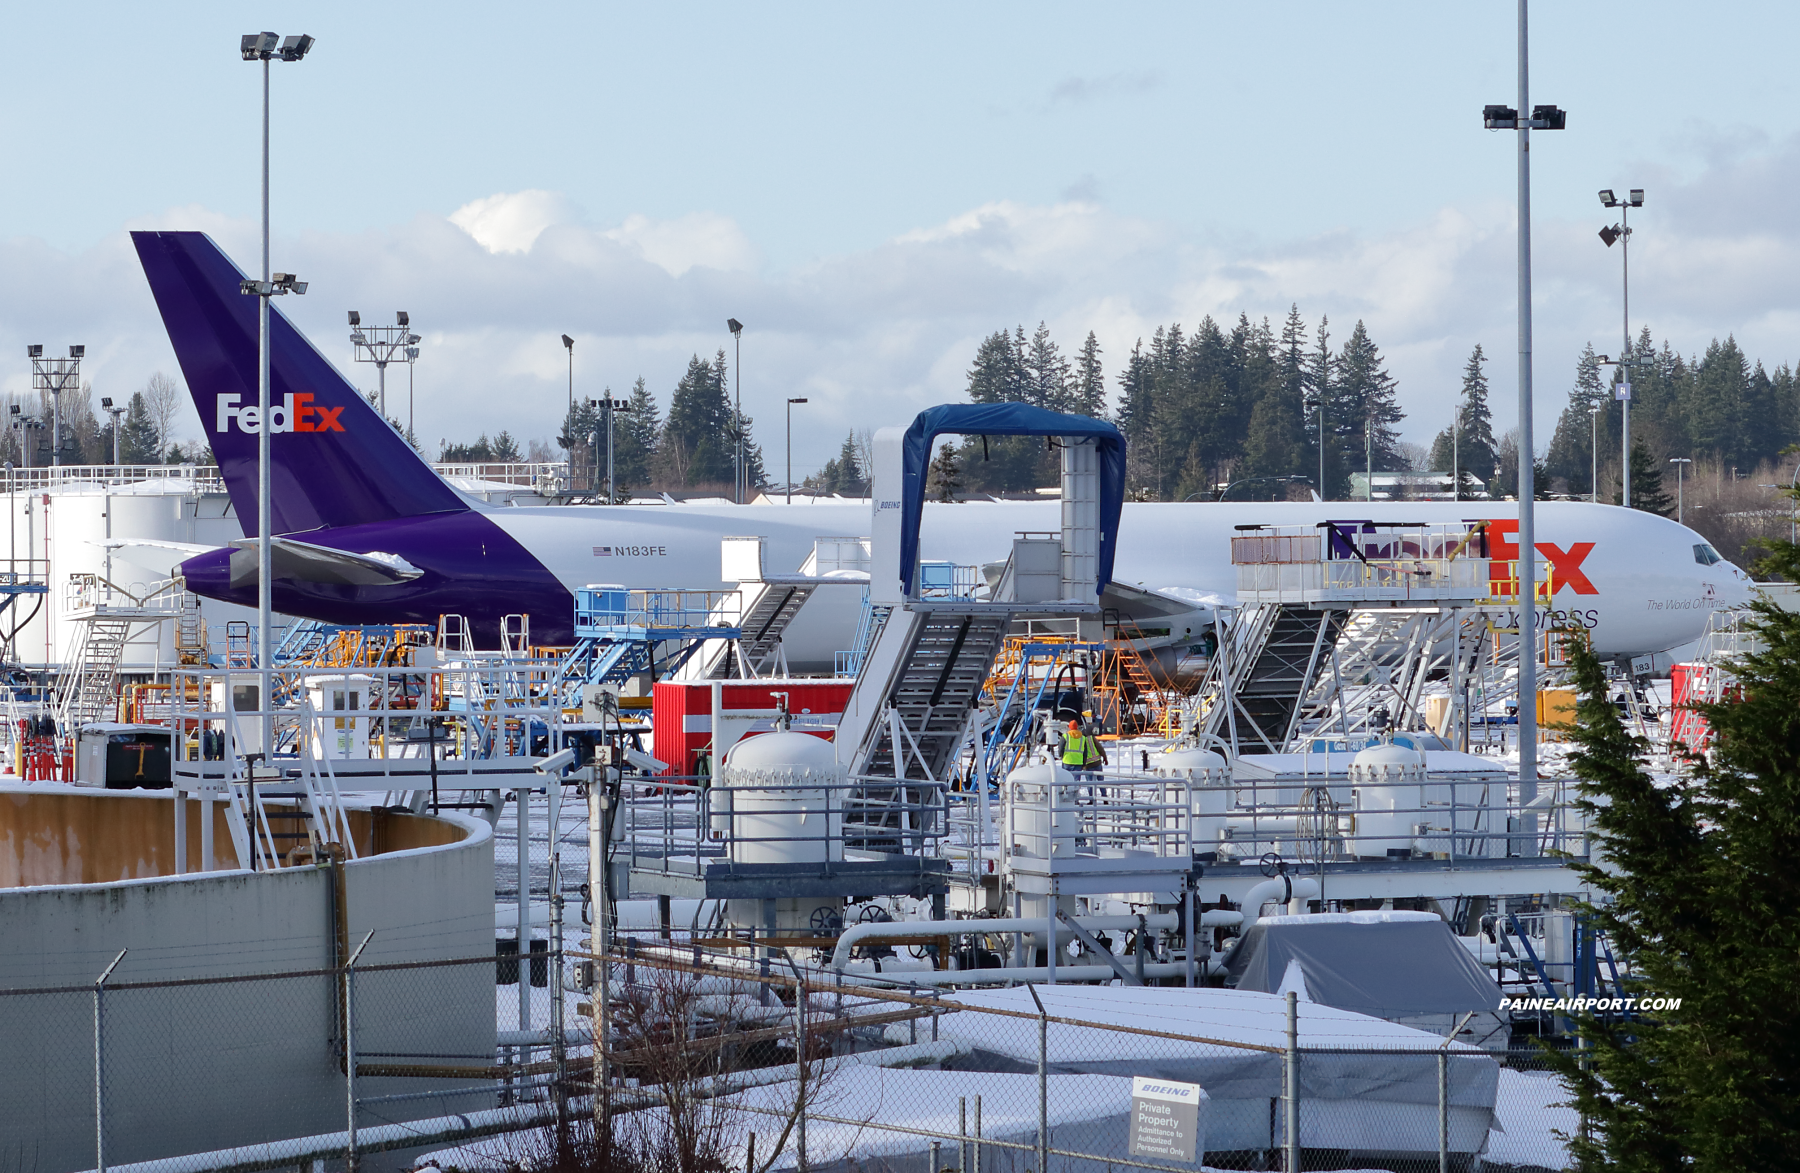 FedEx 767 N183FE at Paine Field